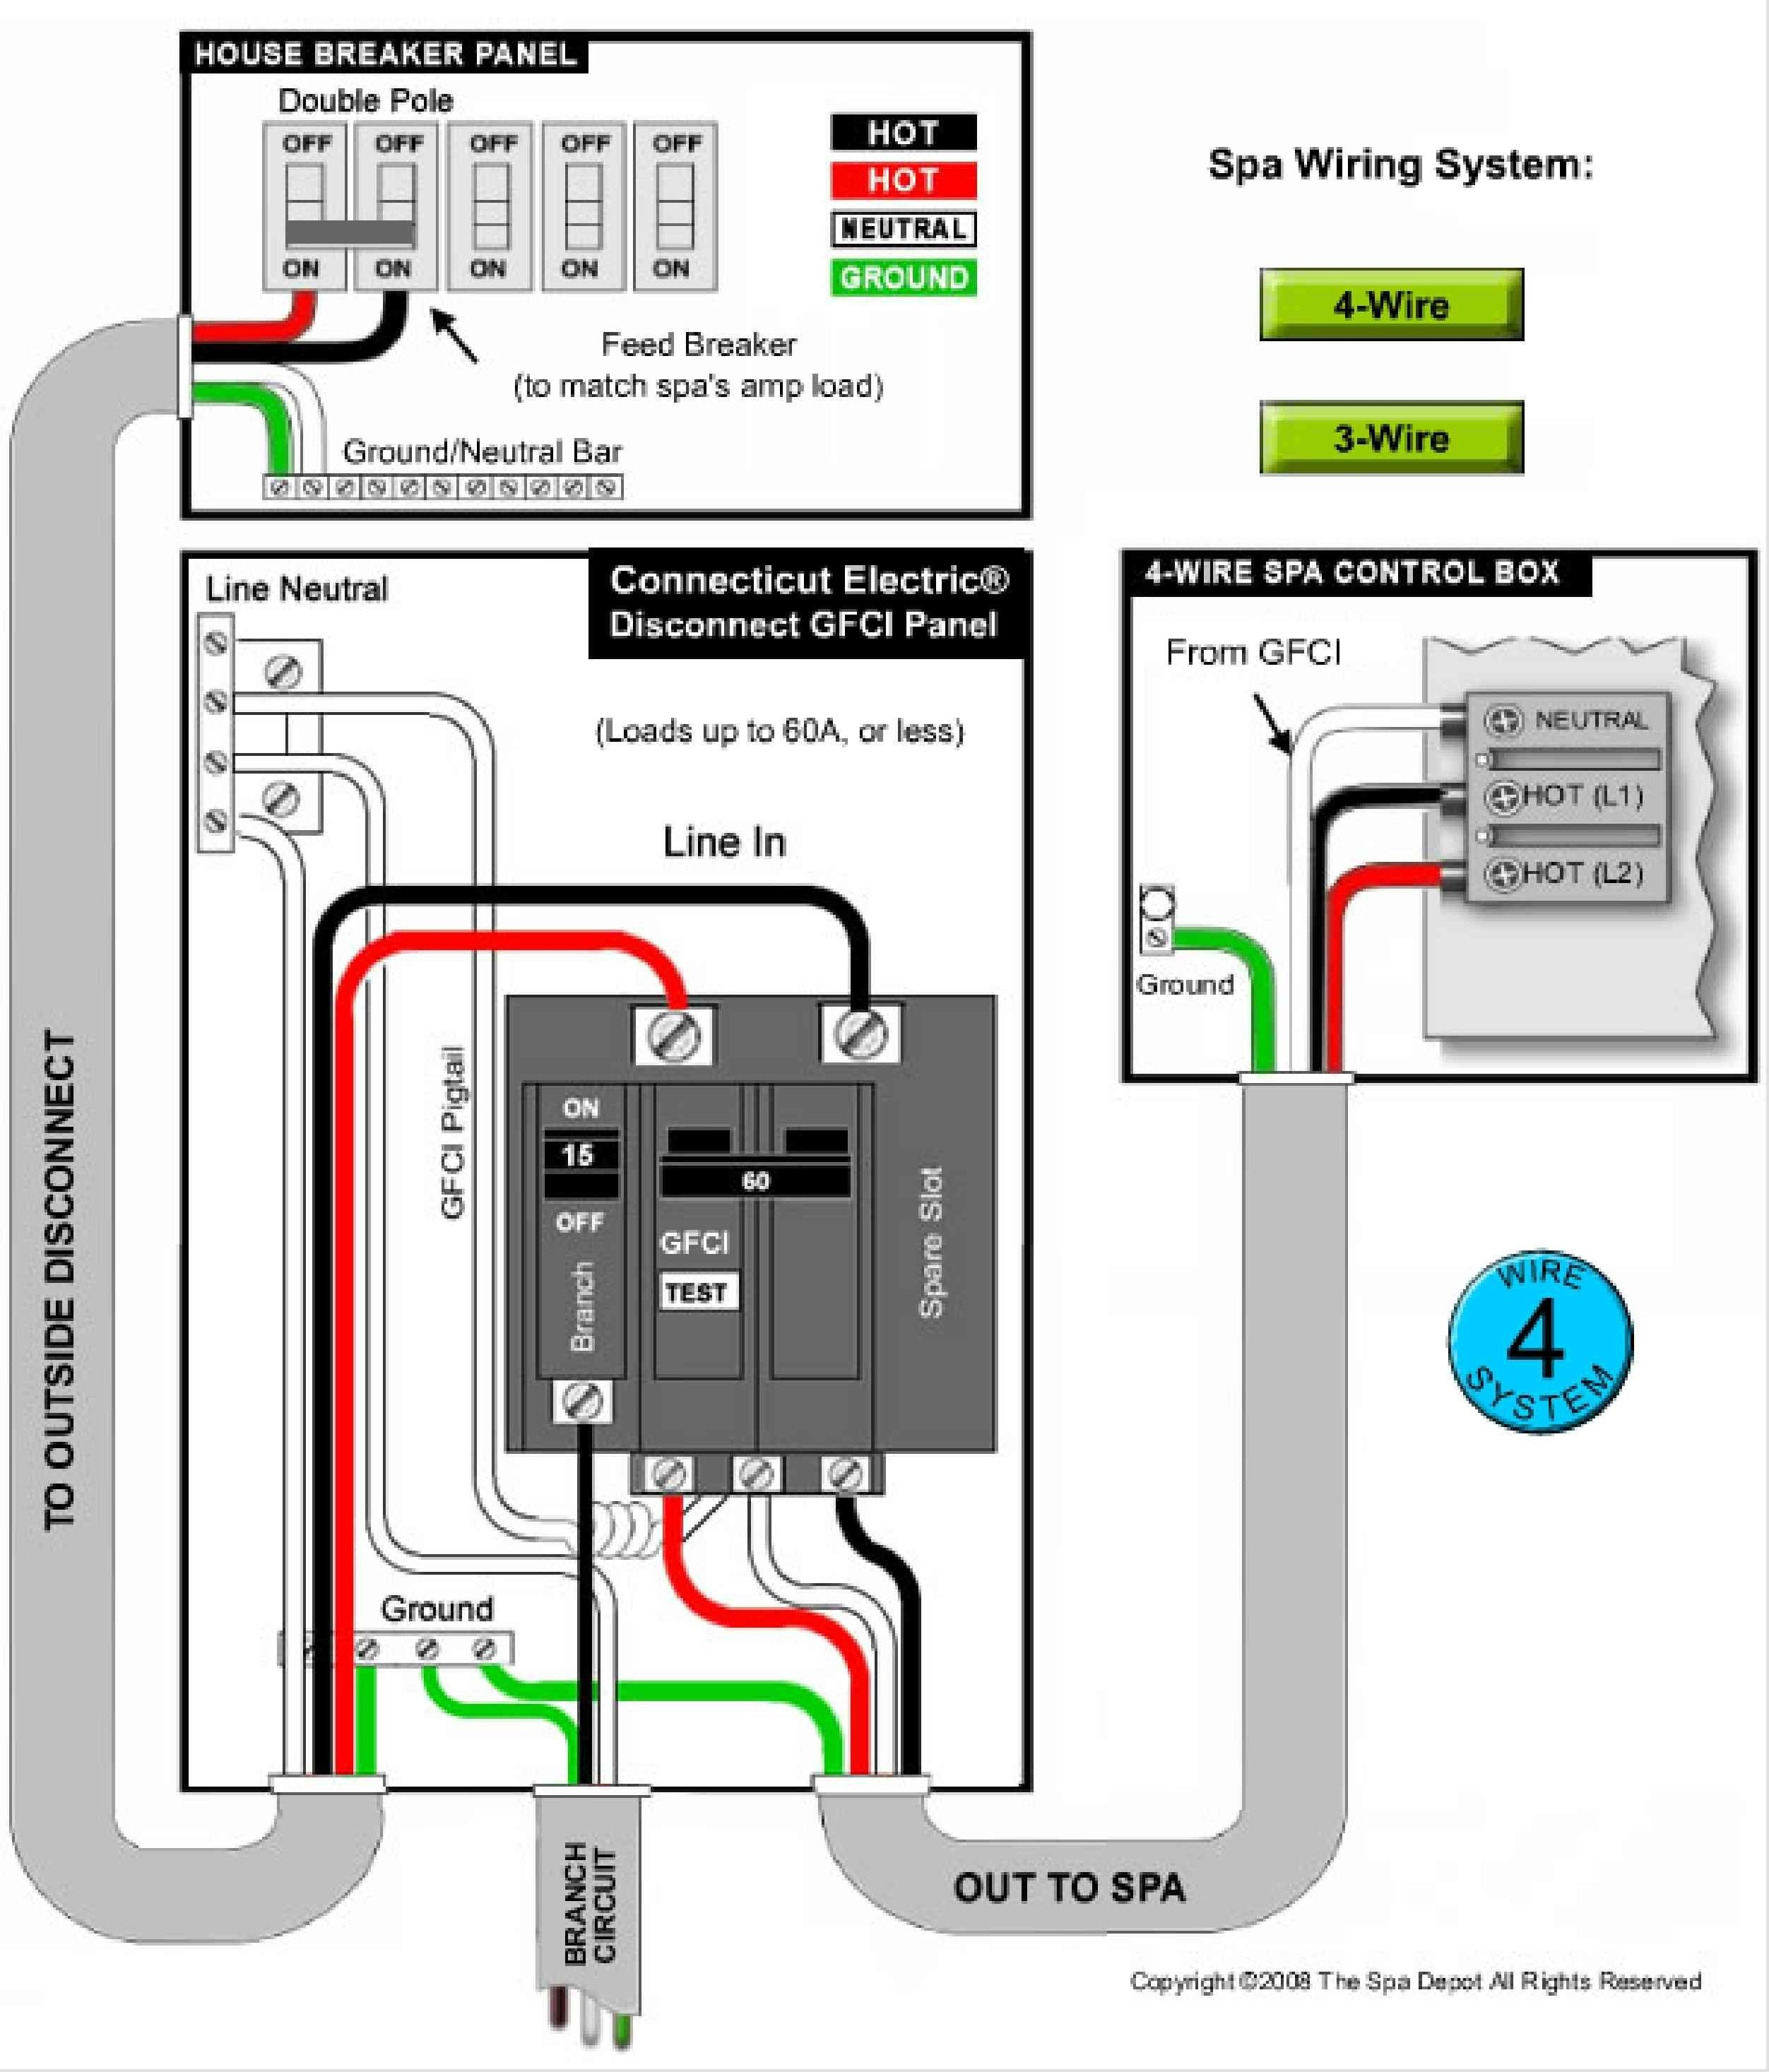 Unique Wiring Diagram For Electric Stove Outlet Diagram Diagramsample Diagramtemplate Wiringdiagram Diagramc Gfci Hot Tub Delivery Electrical Panel Wiring